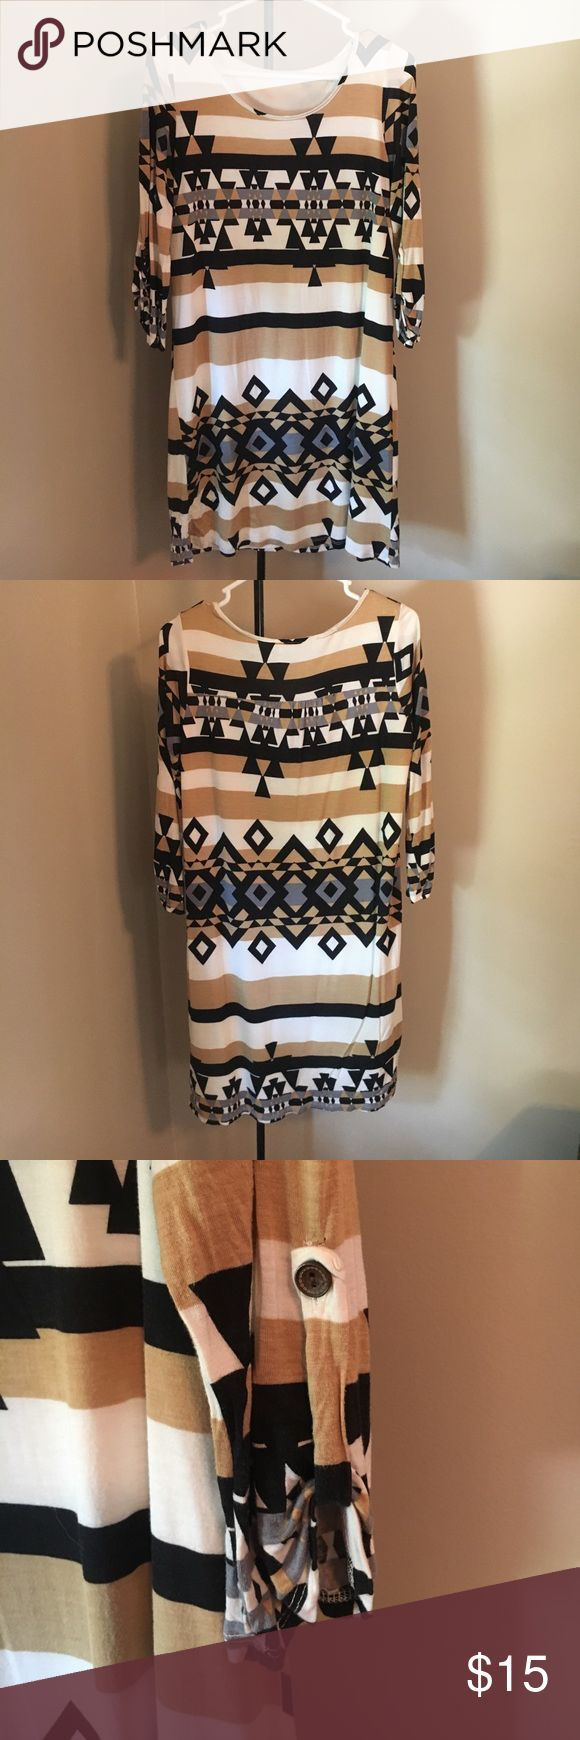 Aztec print dress with quarter length sleeves Aztec print dress with quarter length sleeves. Soft fabric with liner. Dresses Long Sleeve